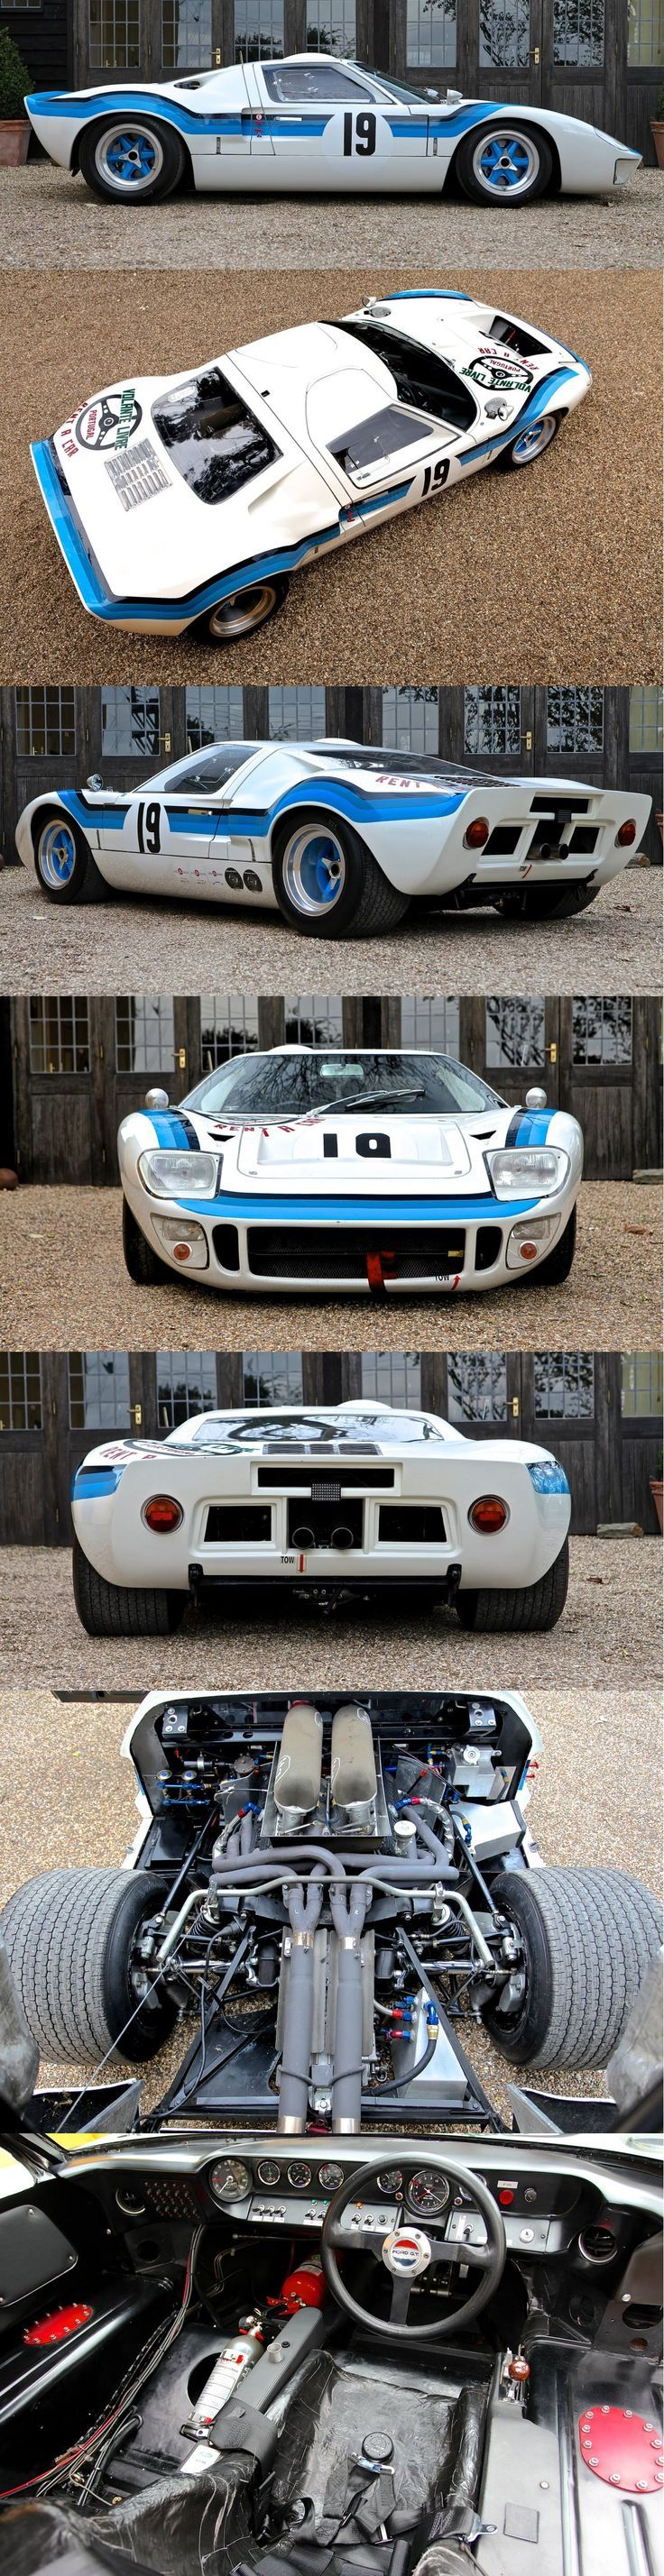 Sports Cars - 1969 Ford GT40 Mk 1...on my dream list top 5 ..maybe top 3...TW Every #Friday it's #RacingFriday at blog.rvinyl.com/...